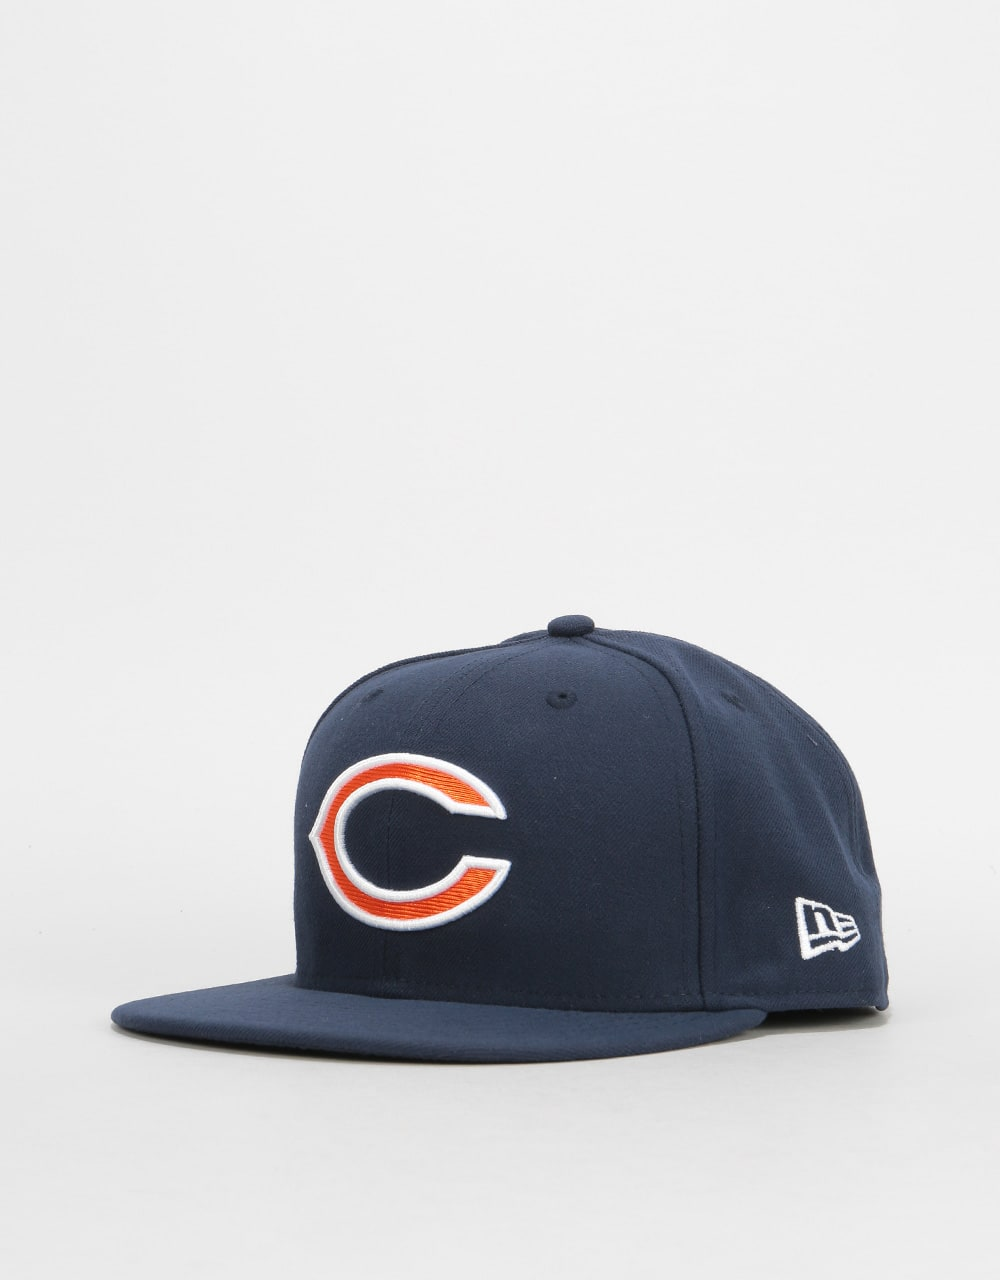 New Era 59Fifty NFL Chicago Bears Fitted Cap - Navy  fbabc938619